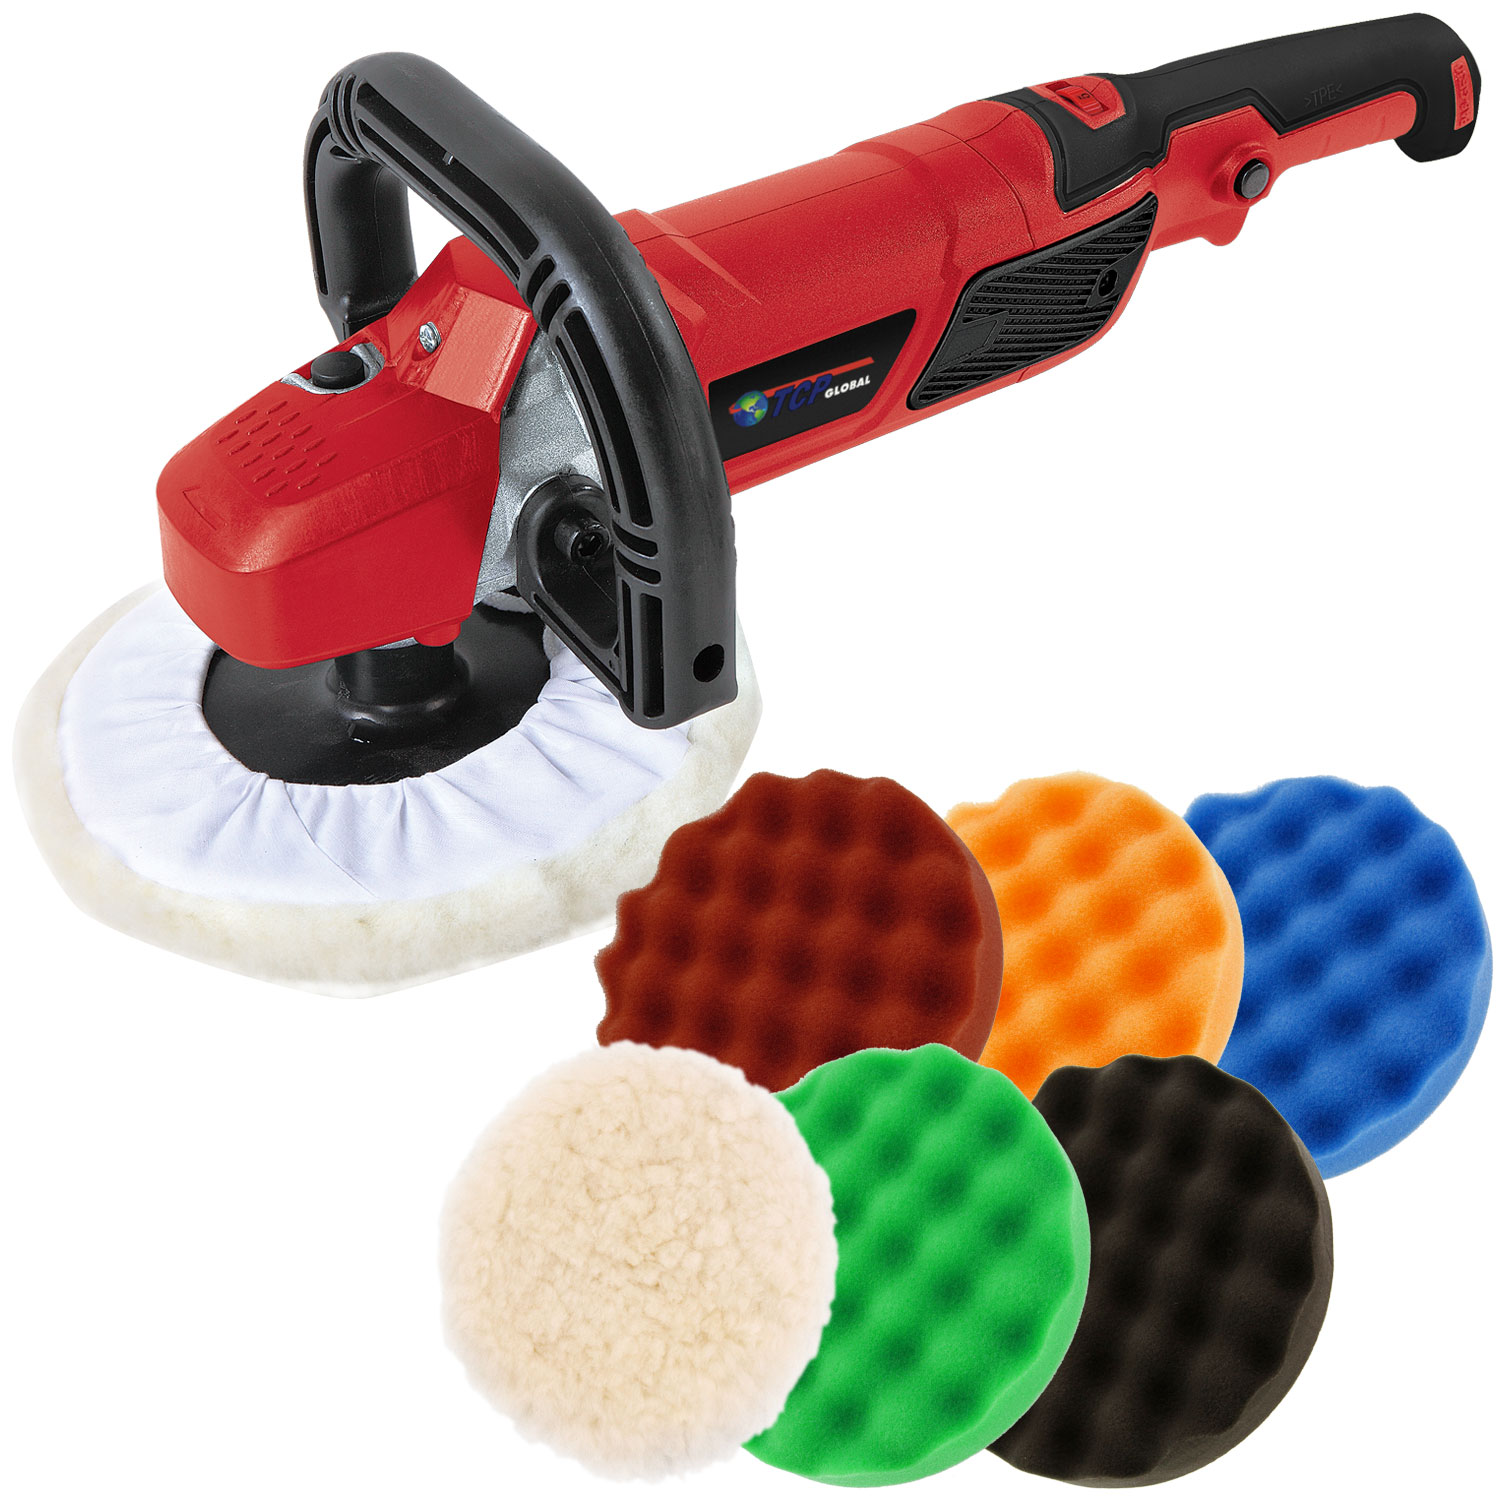 "7"" Professional High Performance Variable Speed Polisher with a 6 Pad Buffing and Polishing Kit"